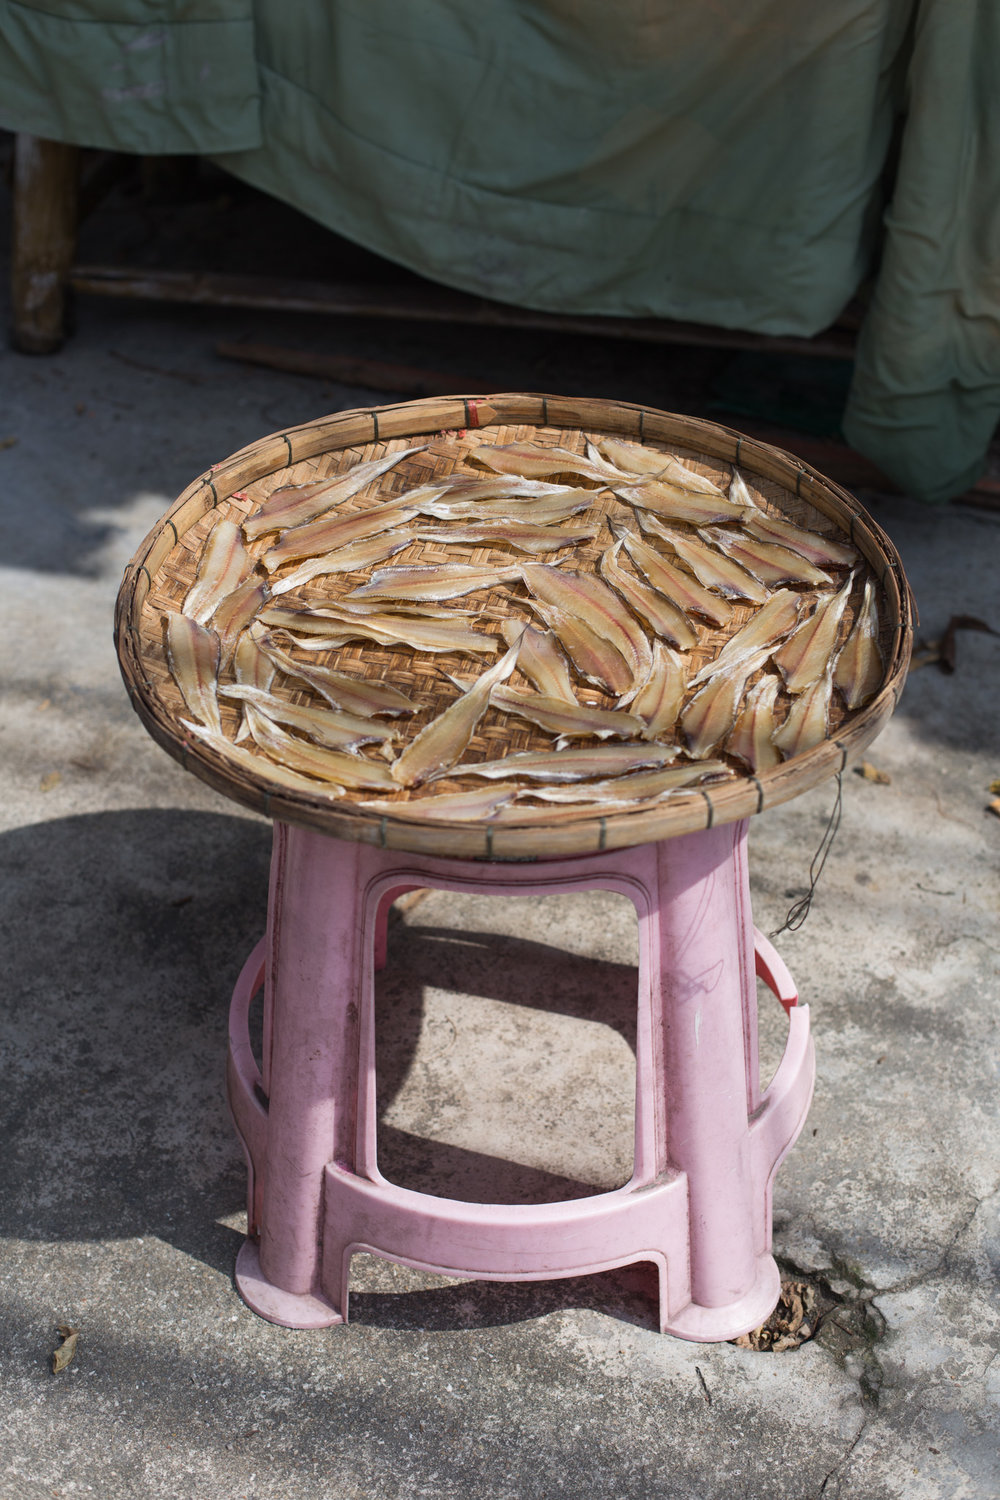 Drying Fish in the Sunlight